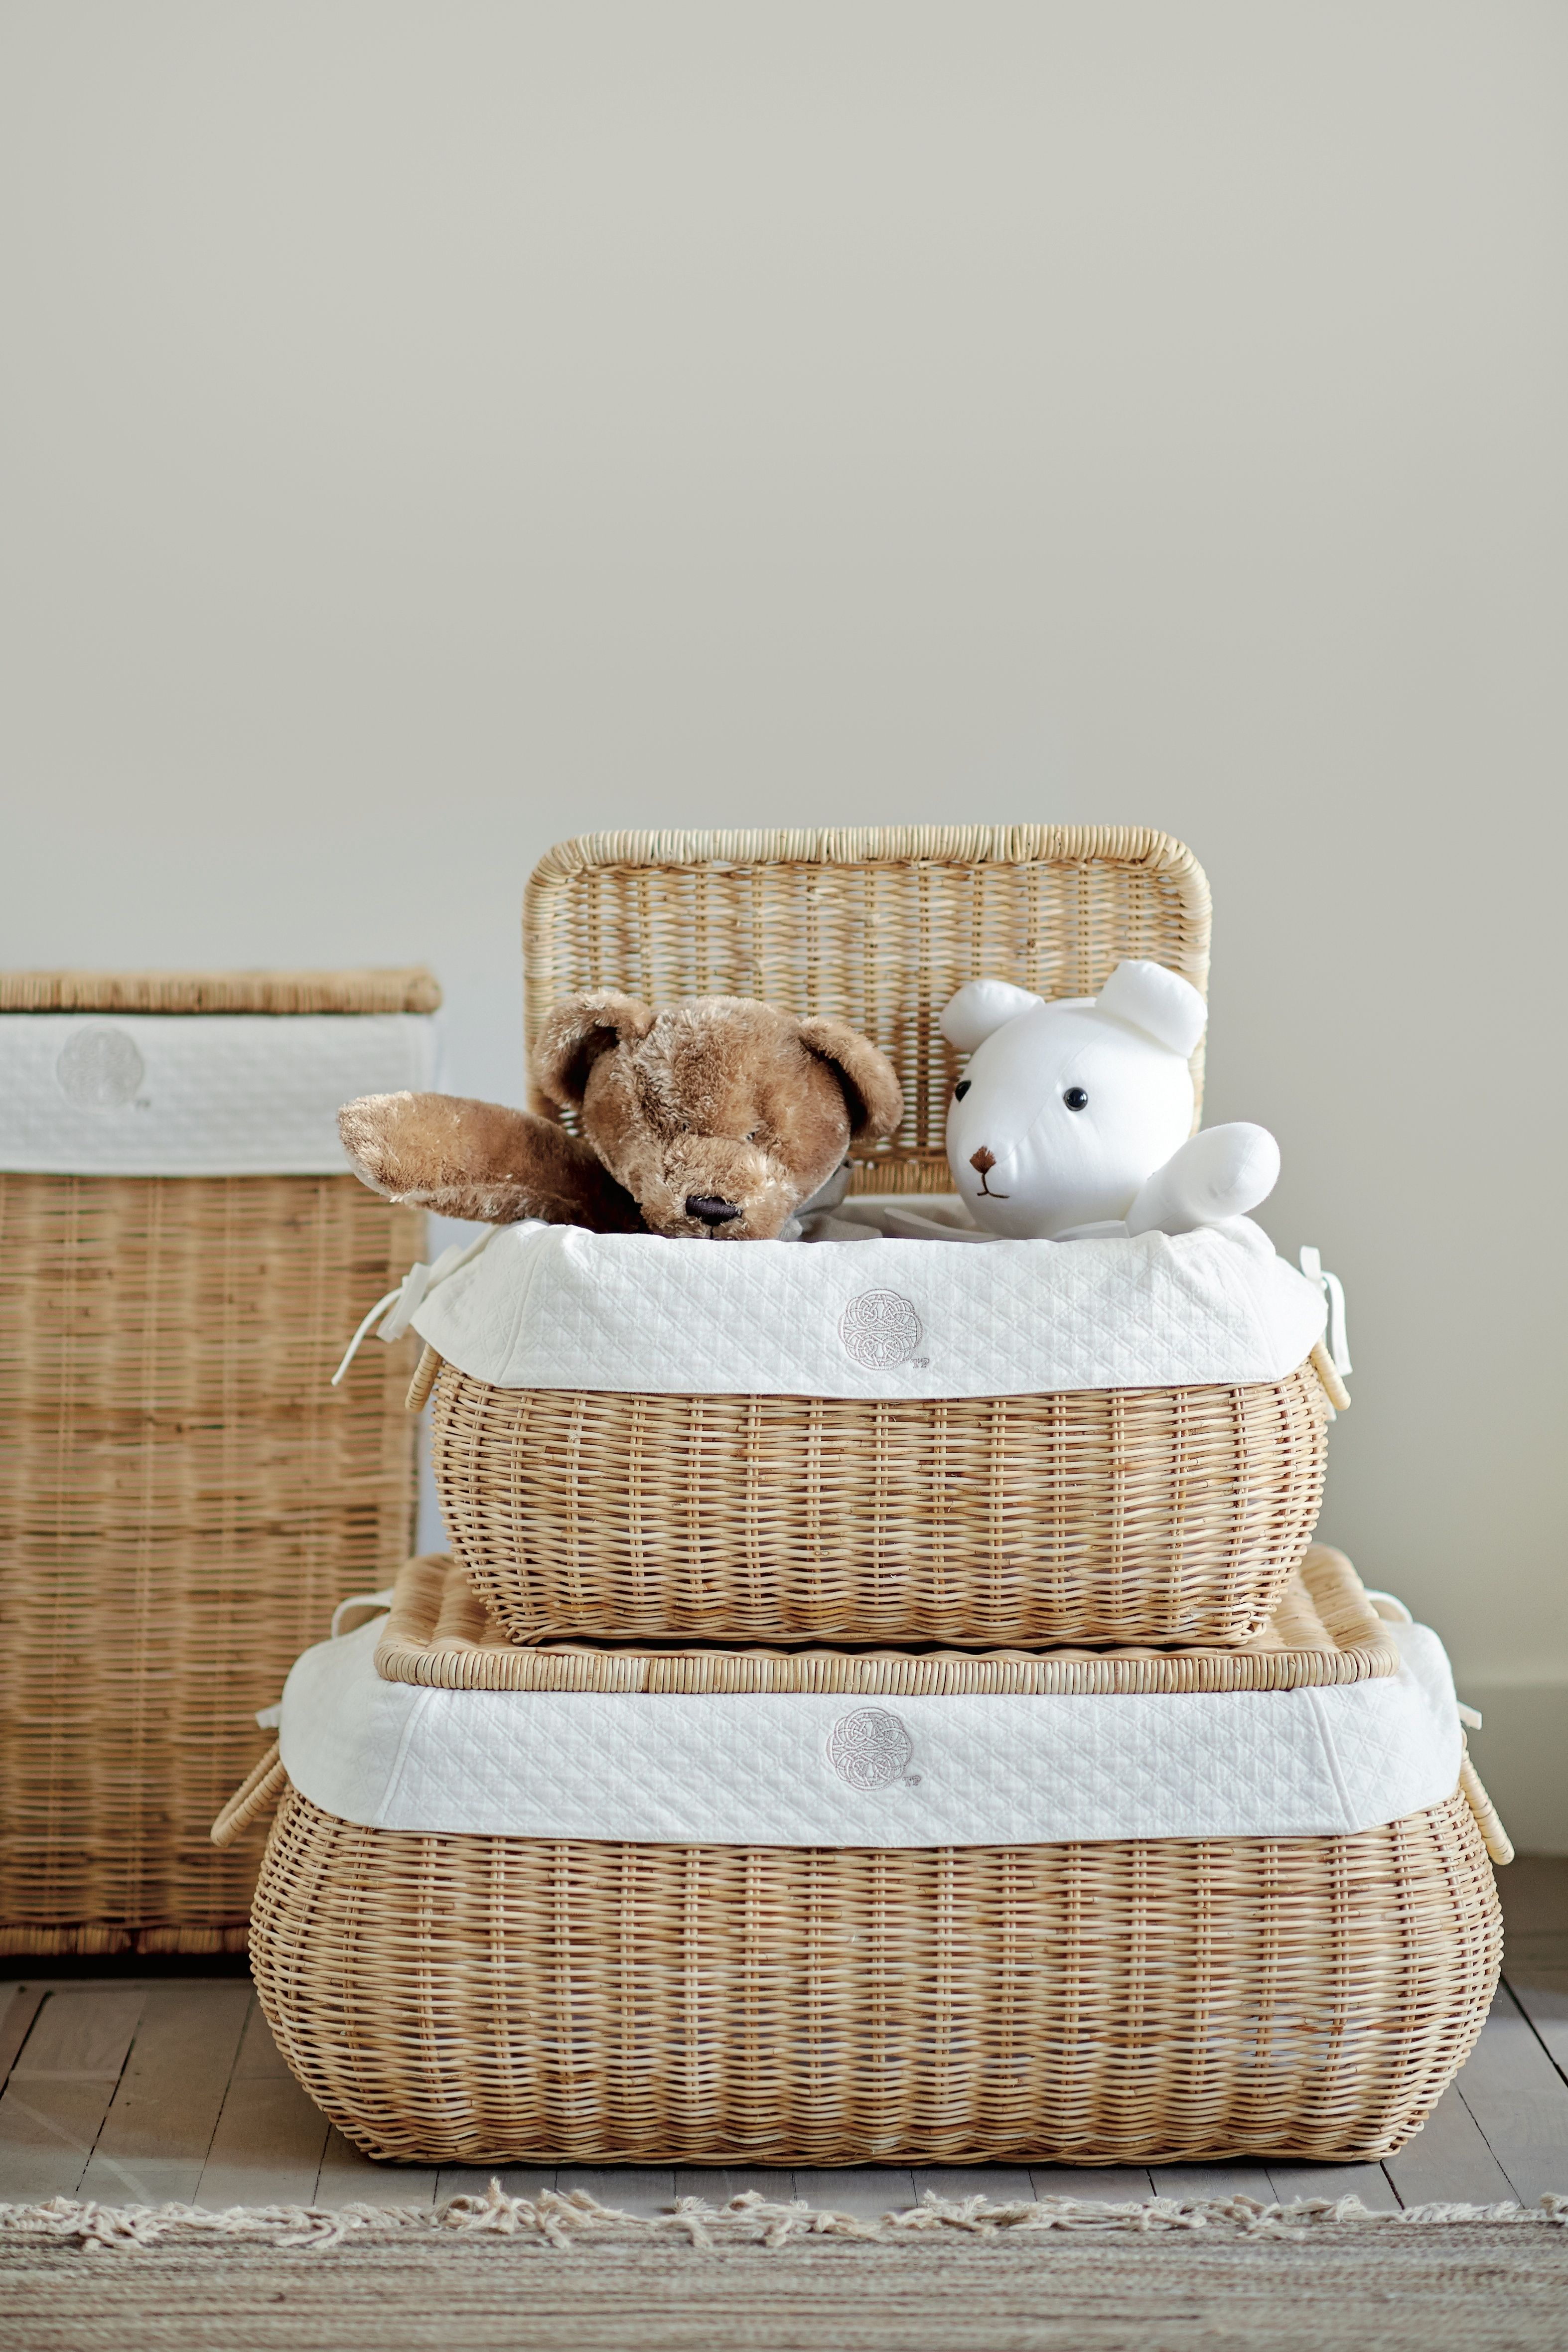 Toy box Théophile & Patachou Available in natural color or white